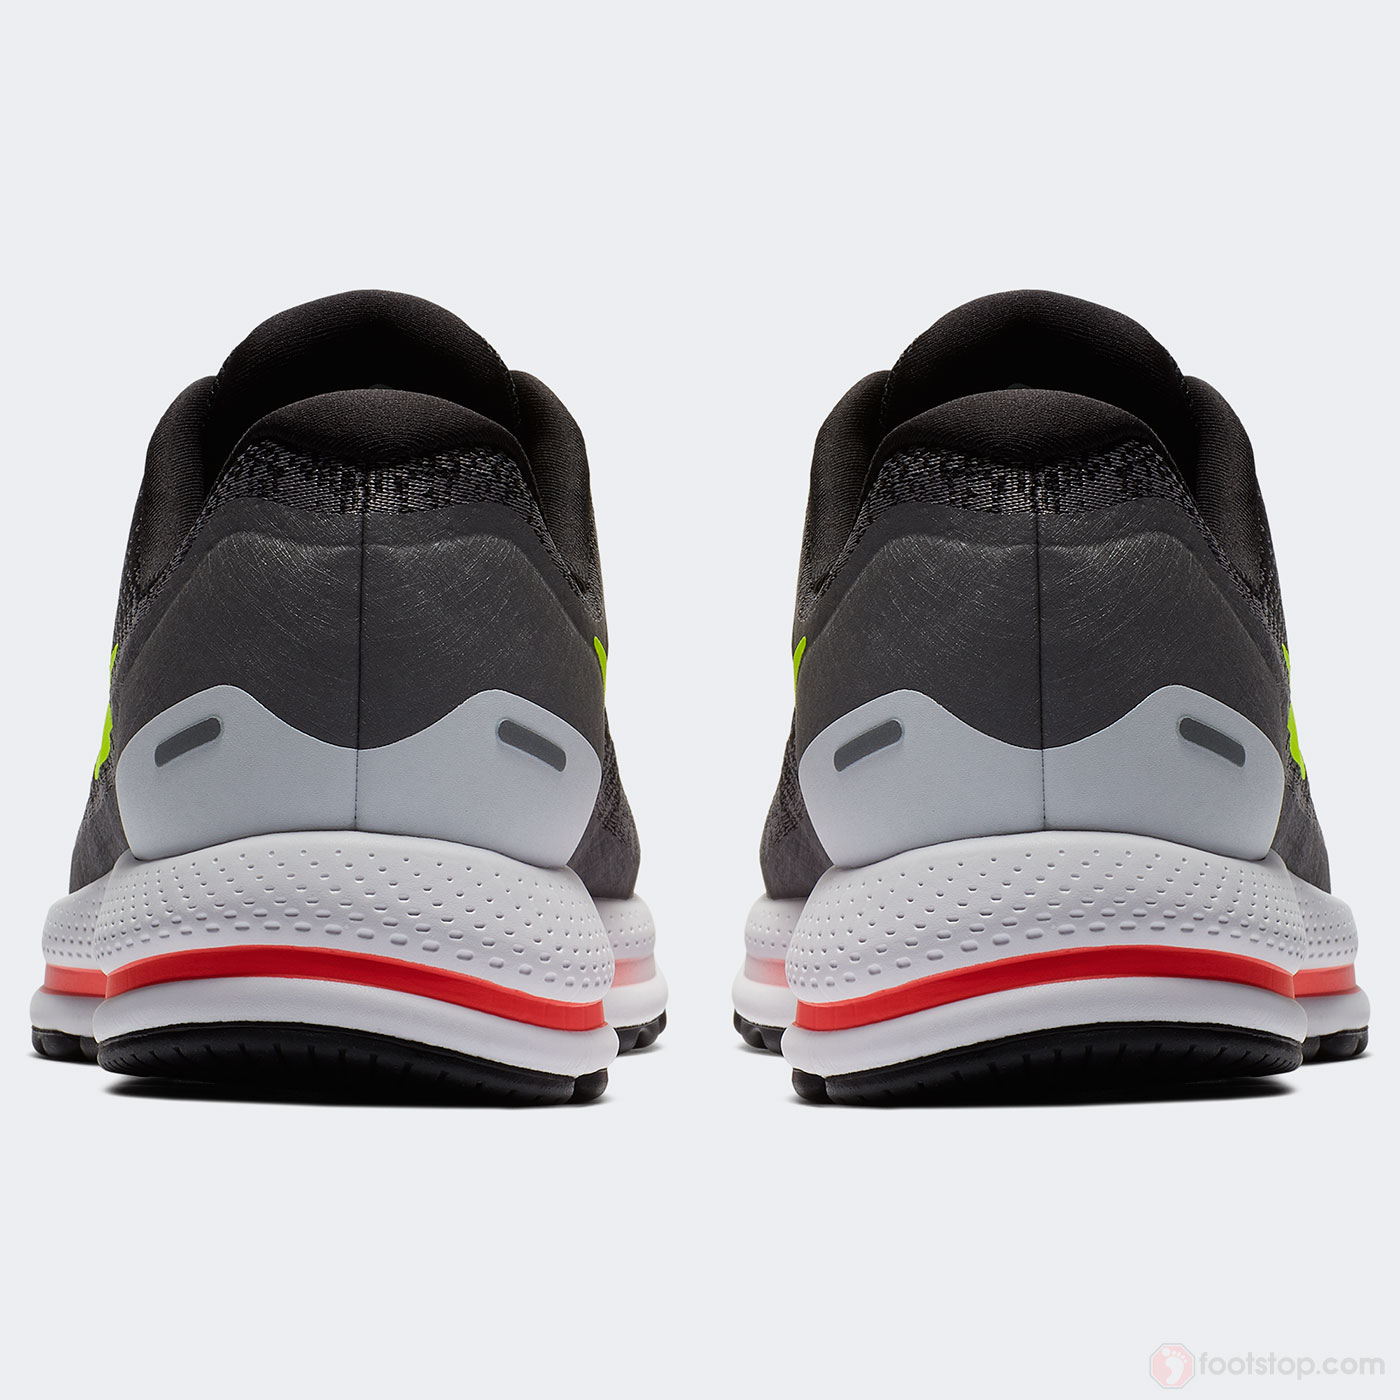 Nike Air Zoom Vomero 13 Running Shoe (922908 070) footstop